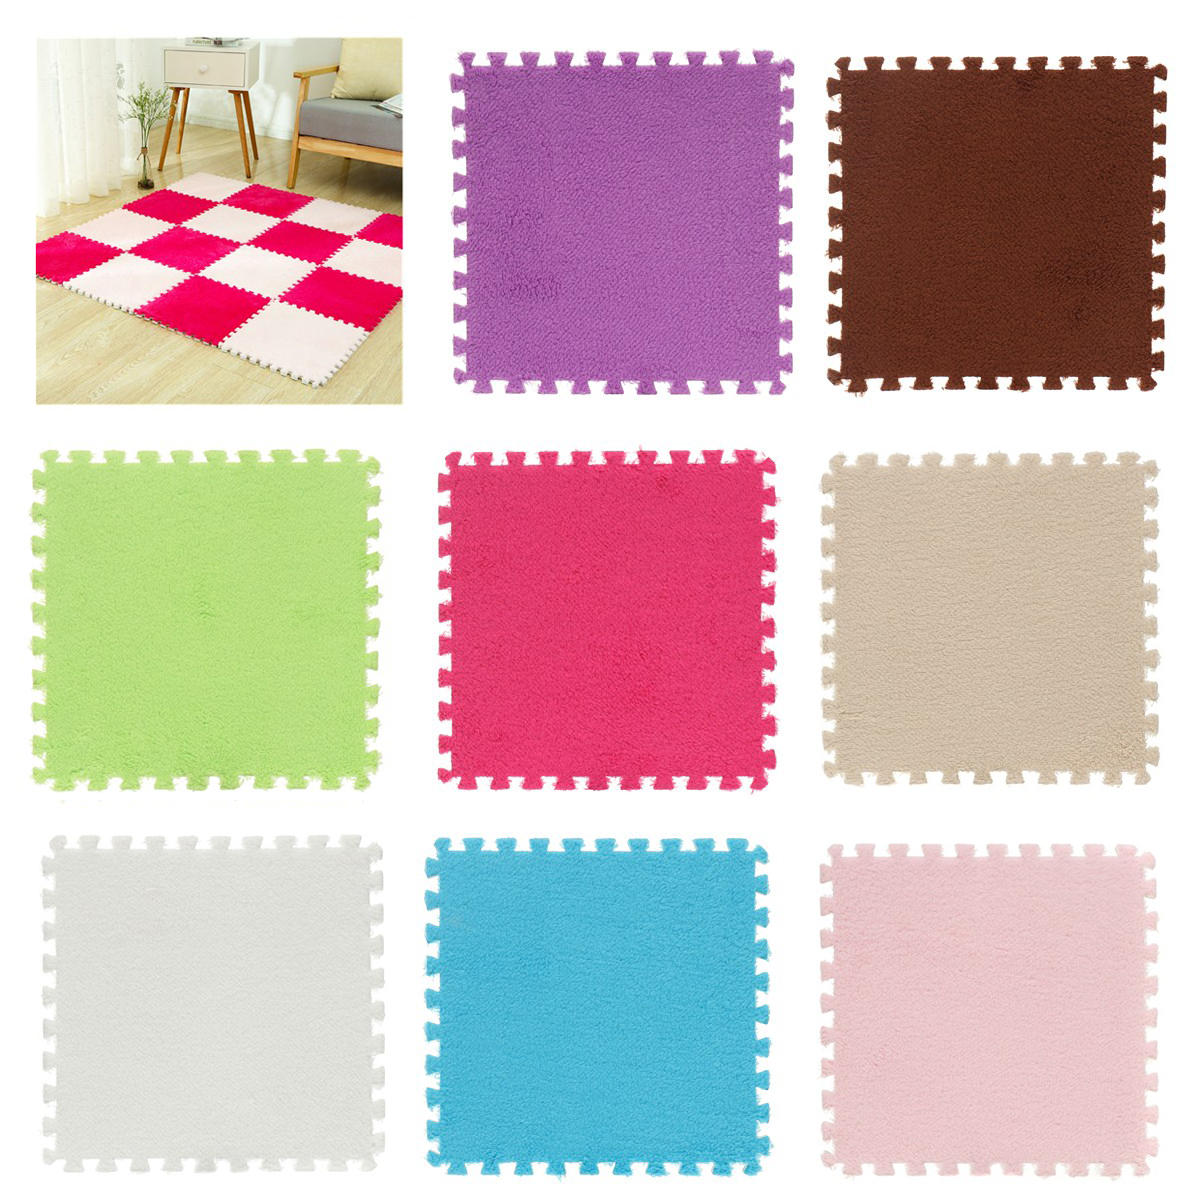 30*30*1 cm EVA Foam Floor Mat Cushion Interlocking Exercise Yoga Puzzle